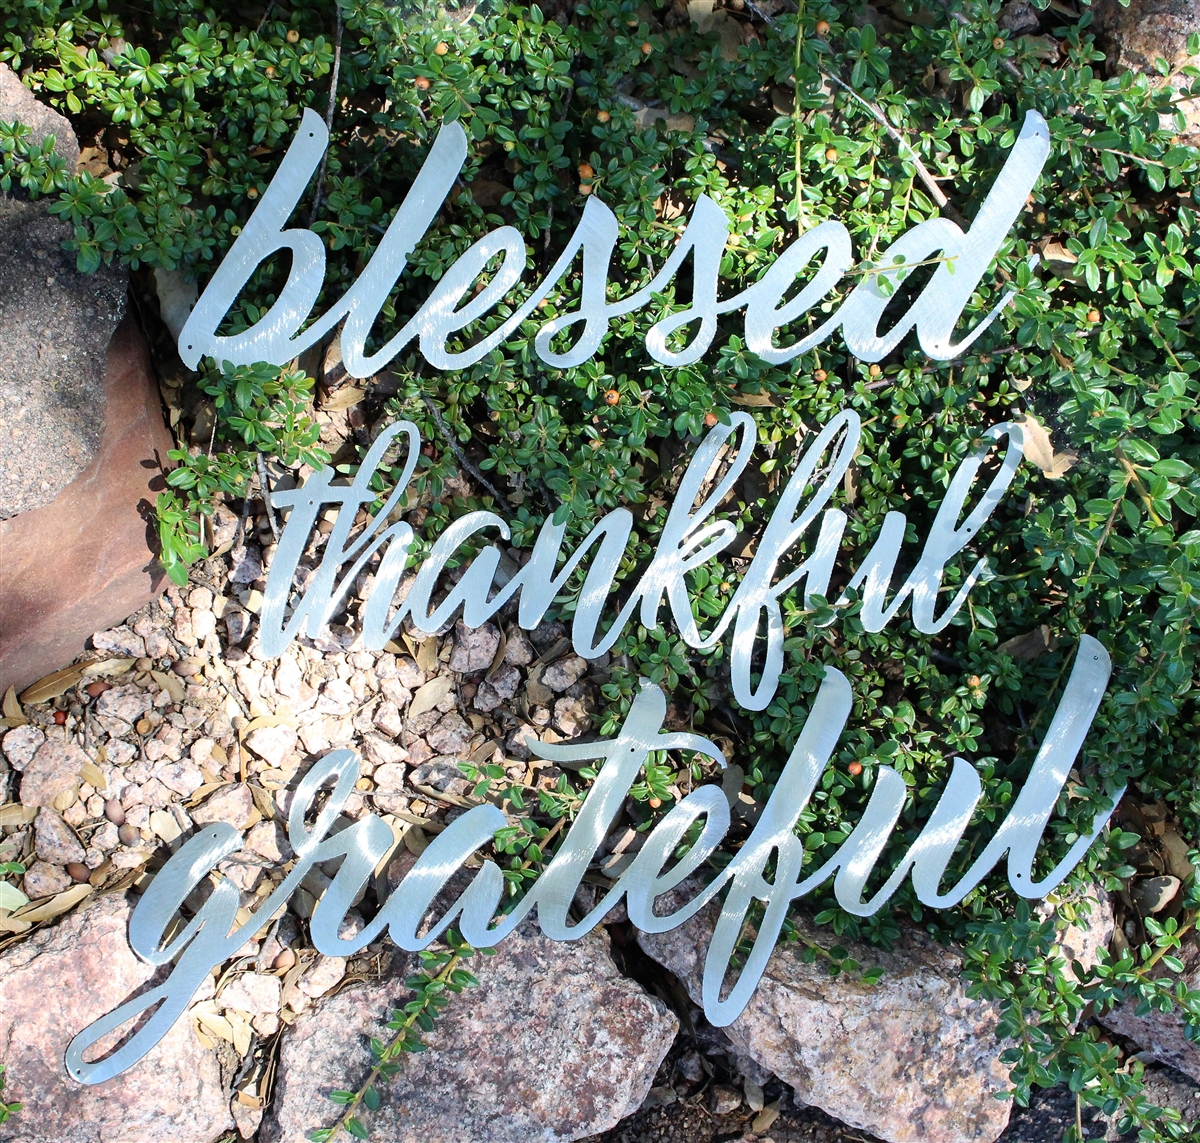 Thankful Grateful Blessed Metal Wall Art Decor Regarding Most Recently Released Blessed Steel Wall Decor (Gallery 10 of 20)